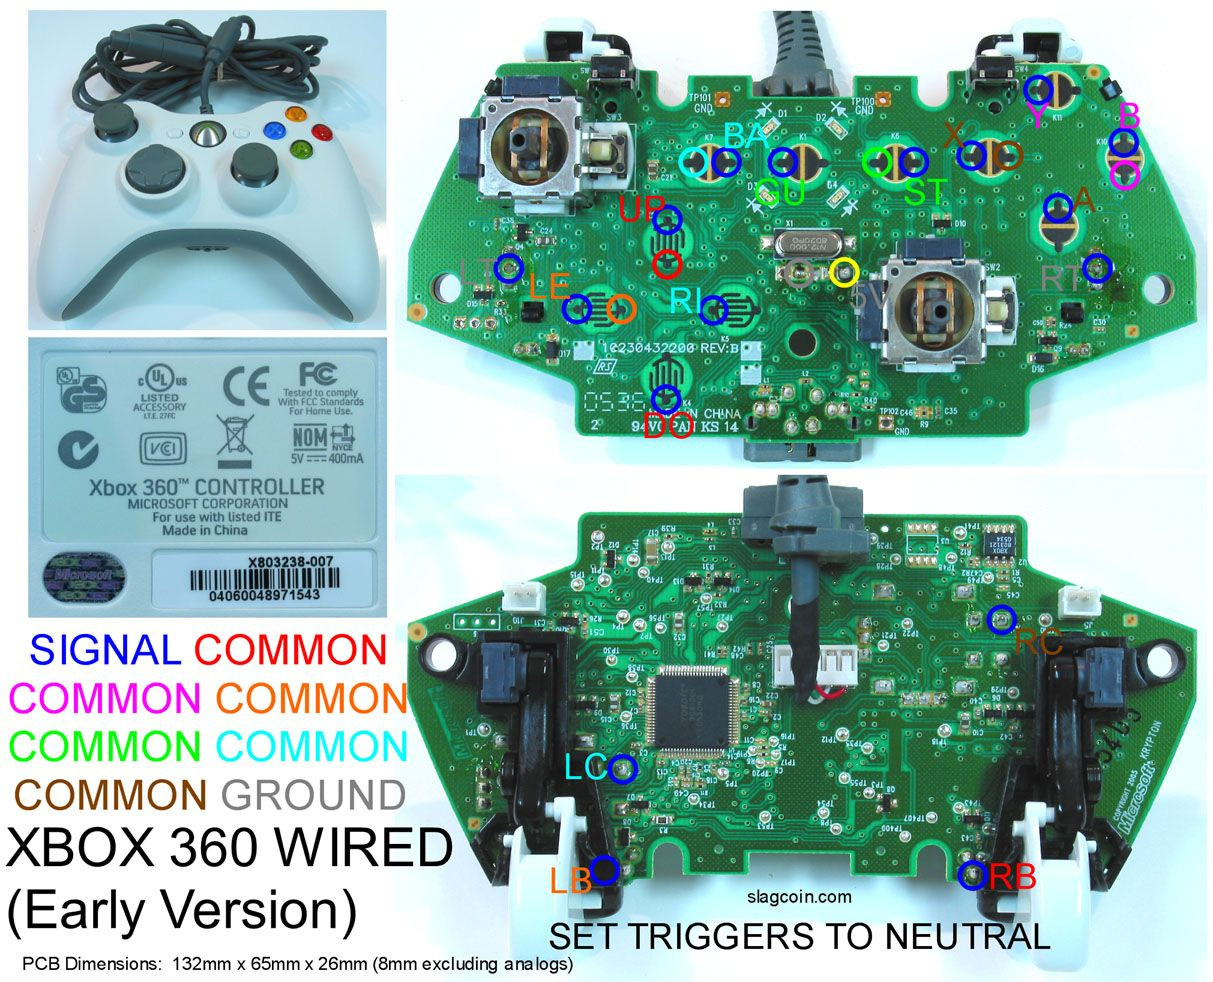 Xbox 360 Wireless Controller Diagram - Wiring Diagram M2 Gamestop Xbox Controller Wiring Diagram on